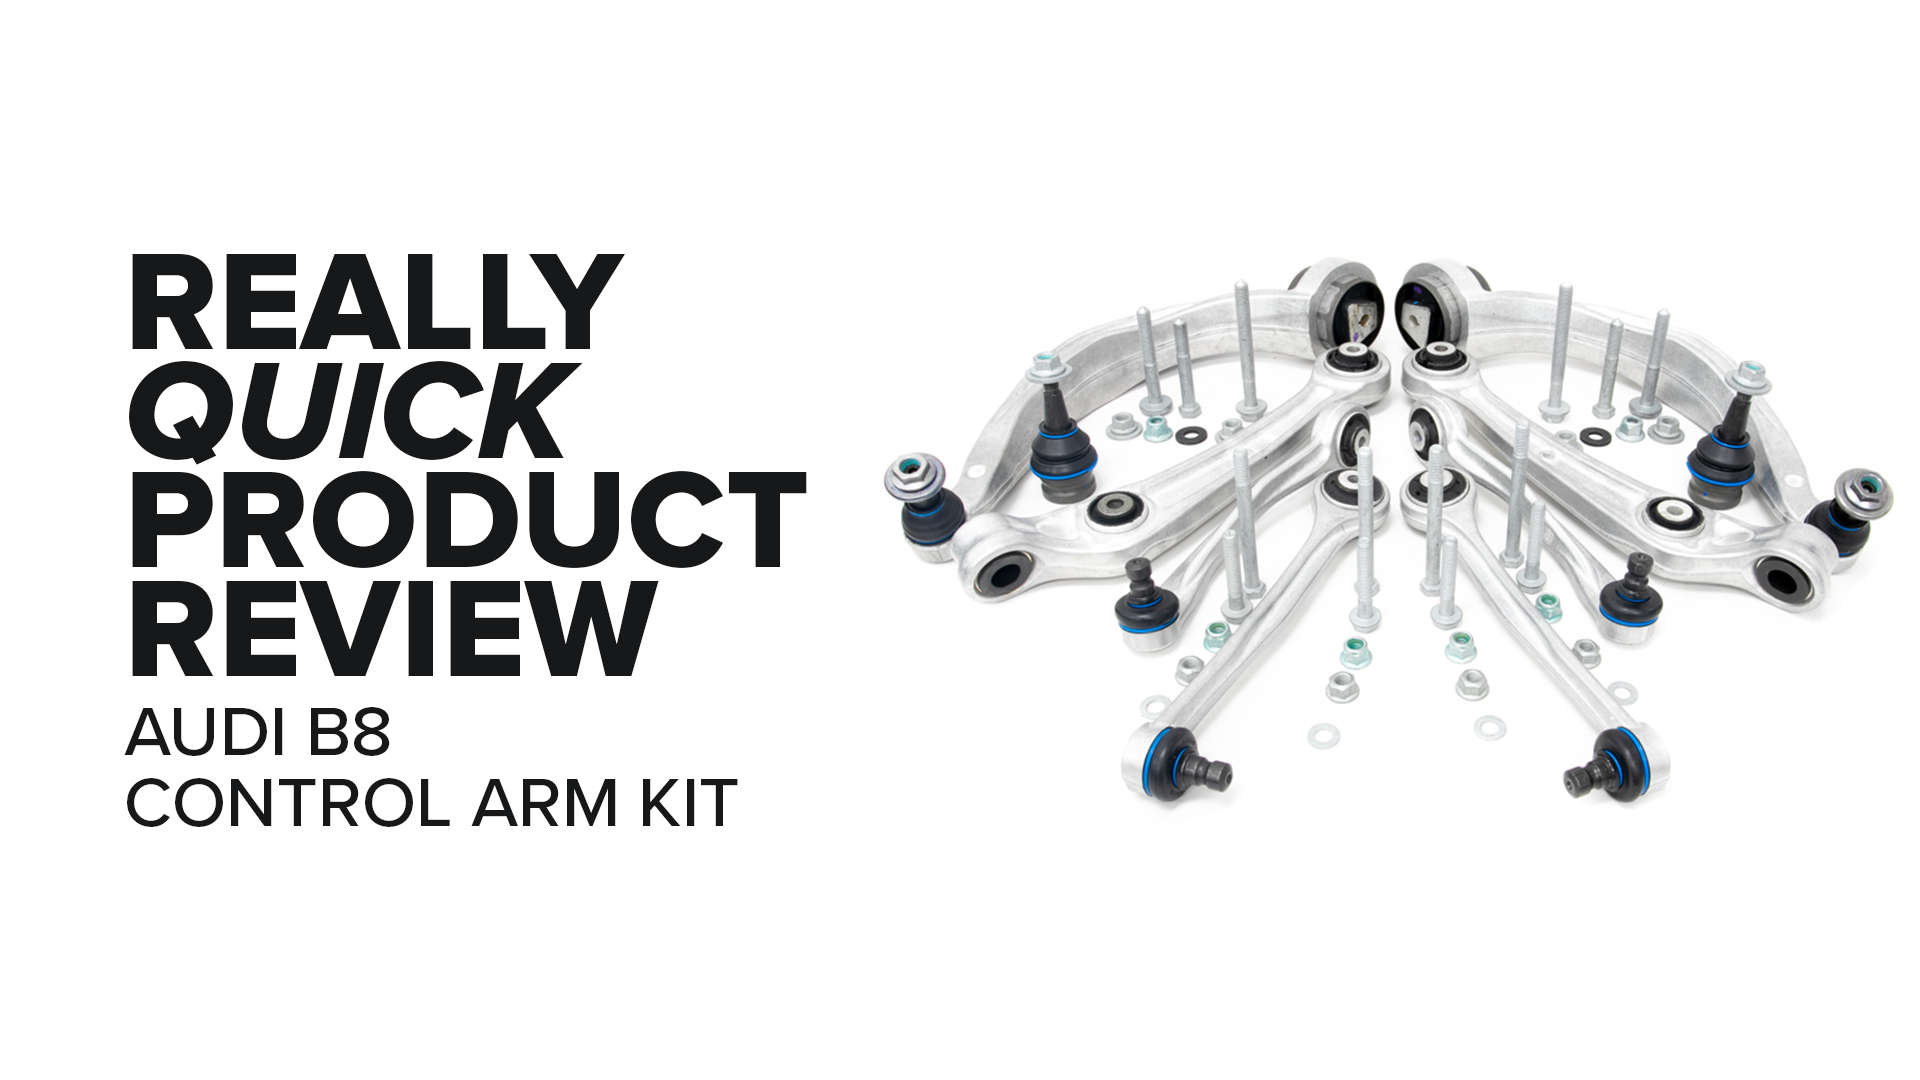 Audi B8 (A4, S4, Q5 & More) Control Arm Kit - Symptoms And Product Review